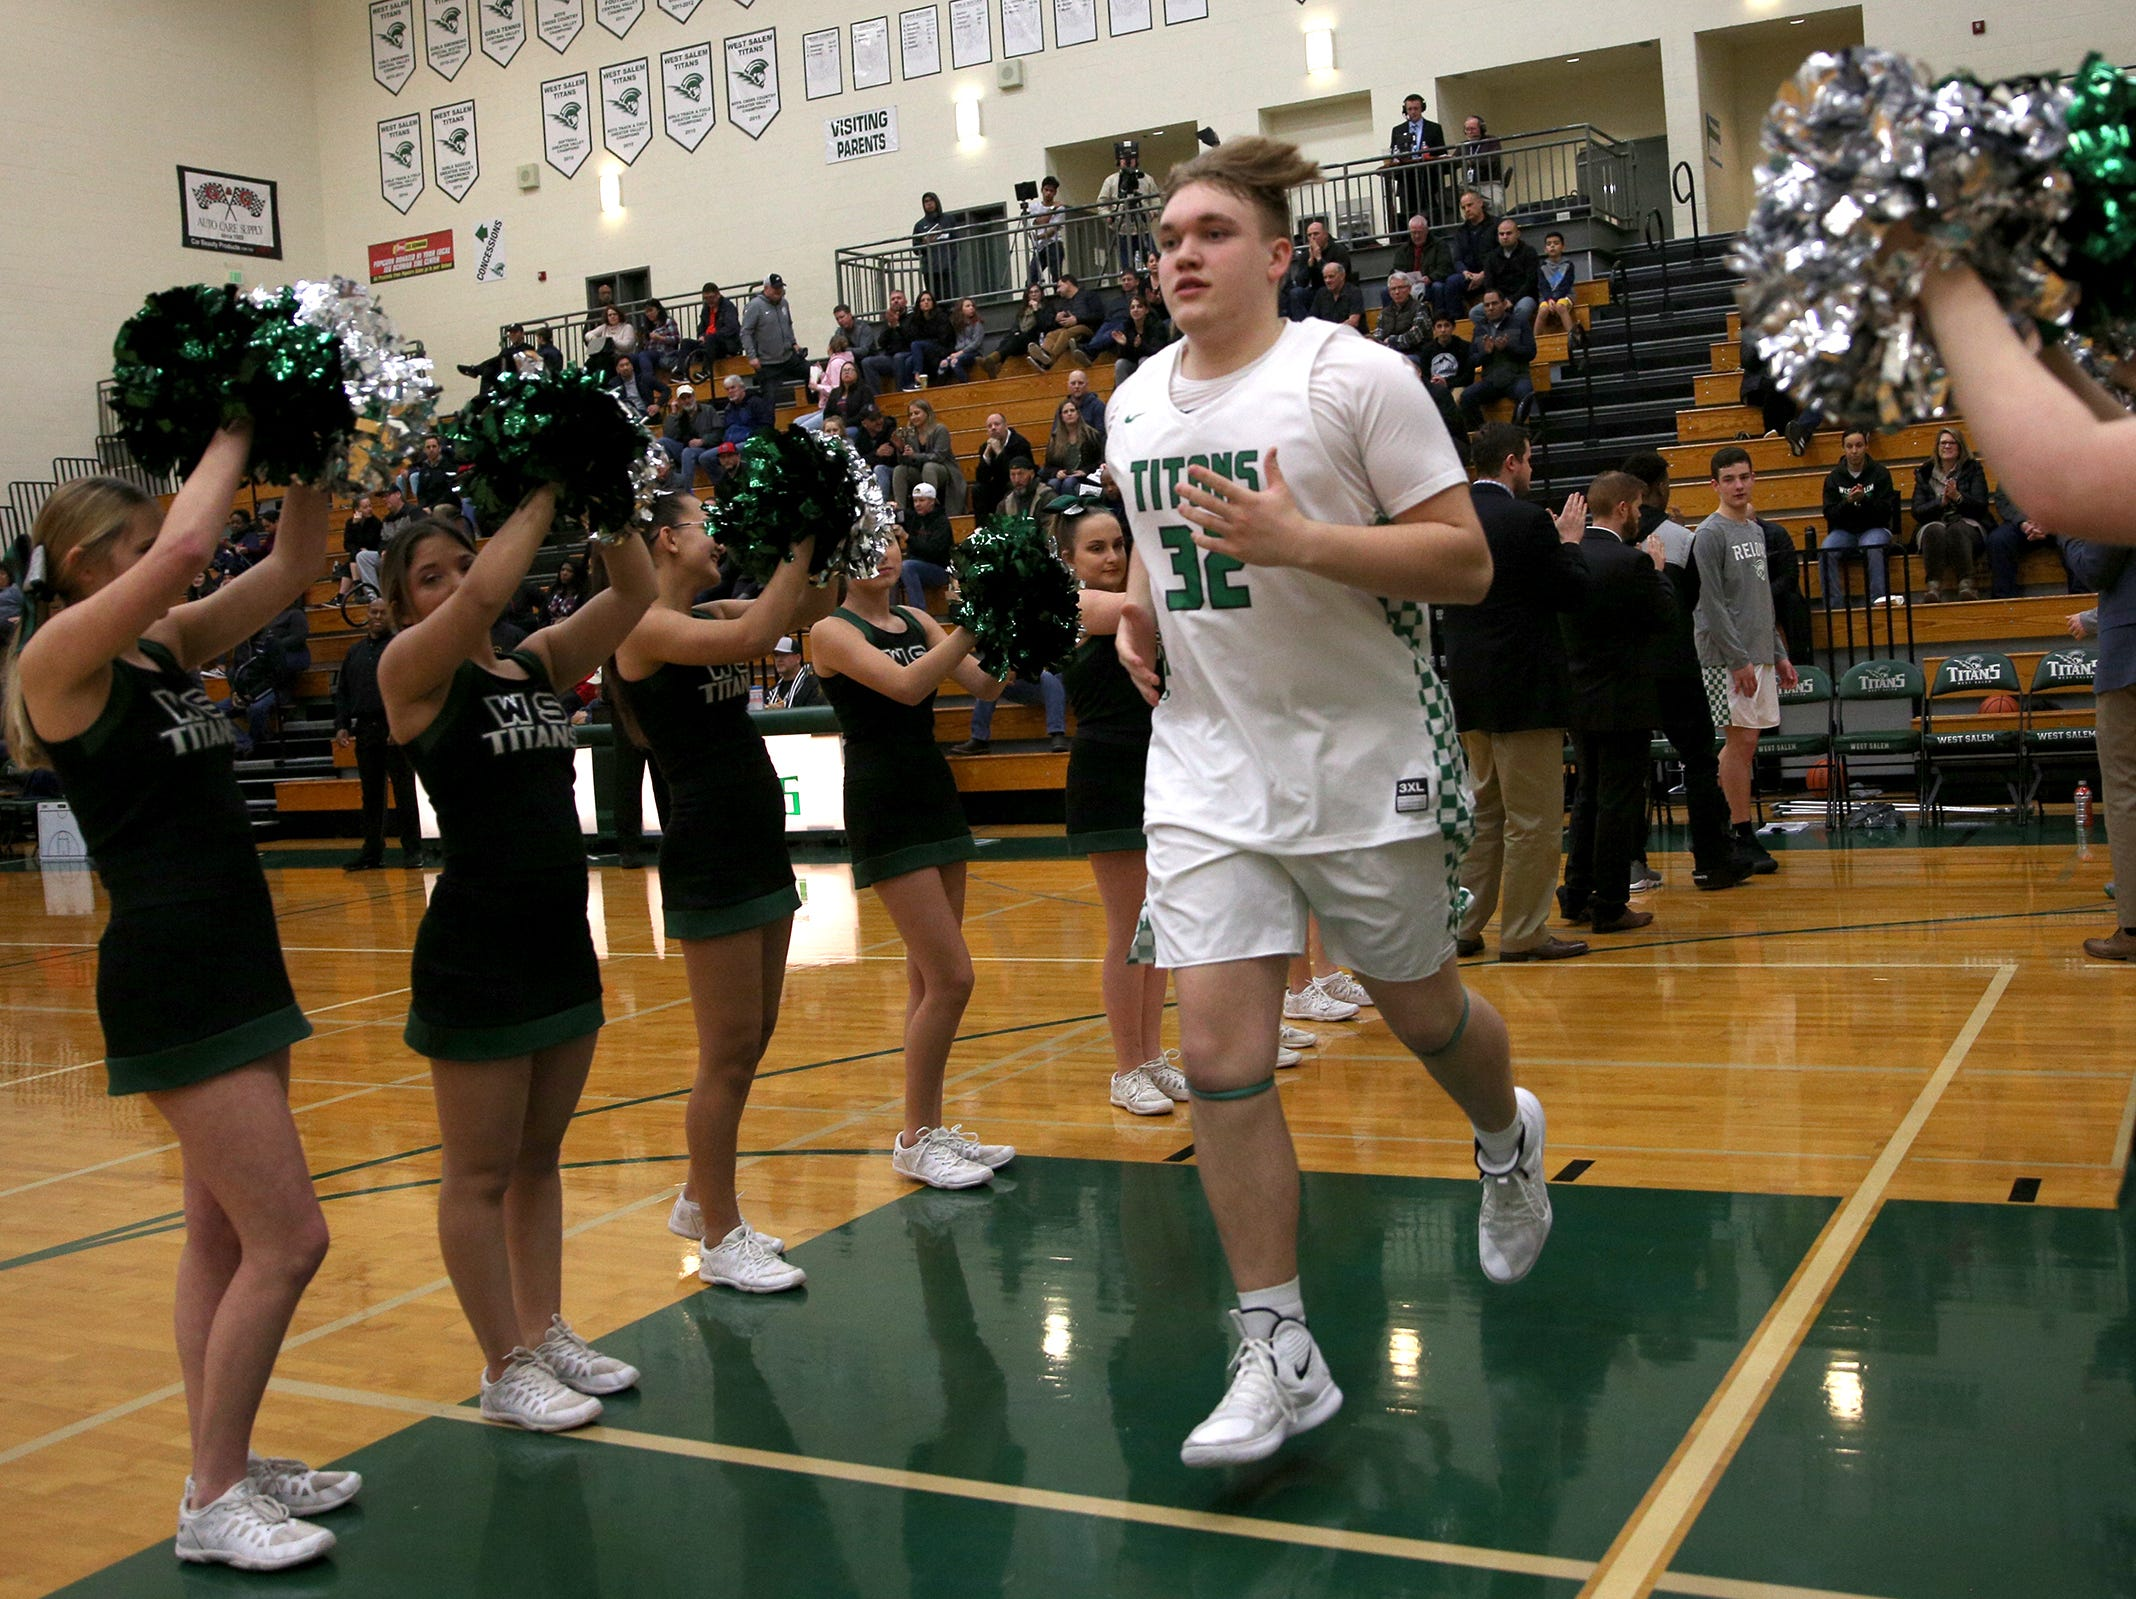 West Salem's Holden Whipple (32) is introduced in the starting lineup before the West Salem vs. Westview 6A Boys Basketball State Championships first round at West Salem High School in Salem on Tuesday, Feb. 26, 2019.